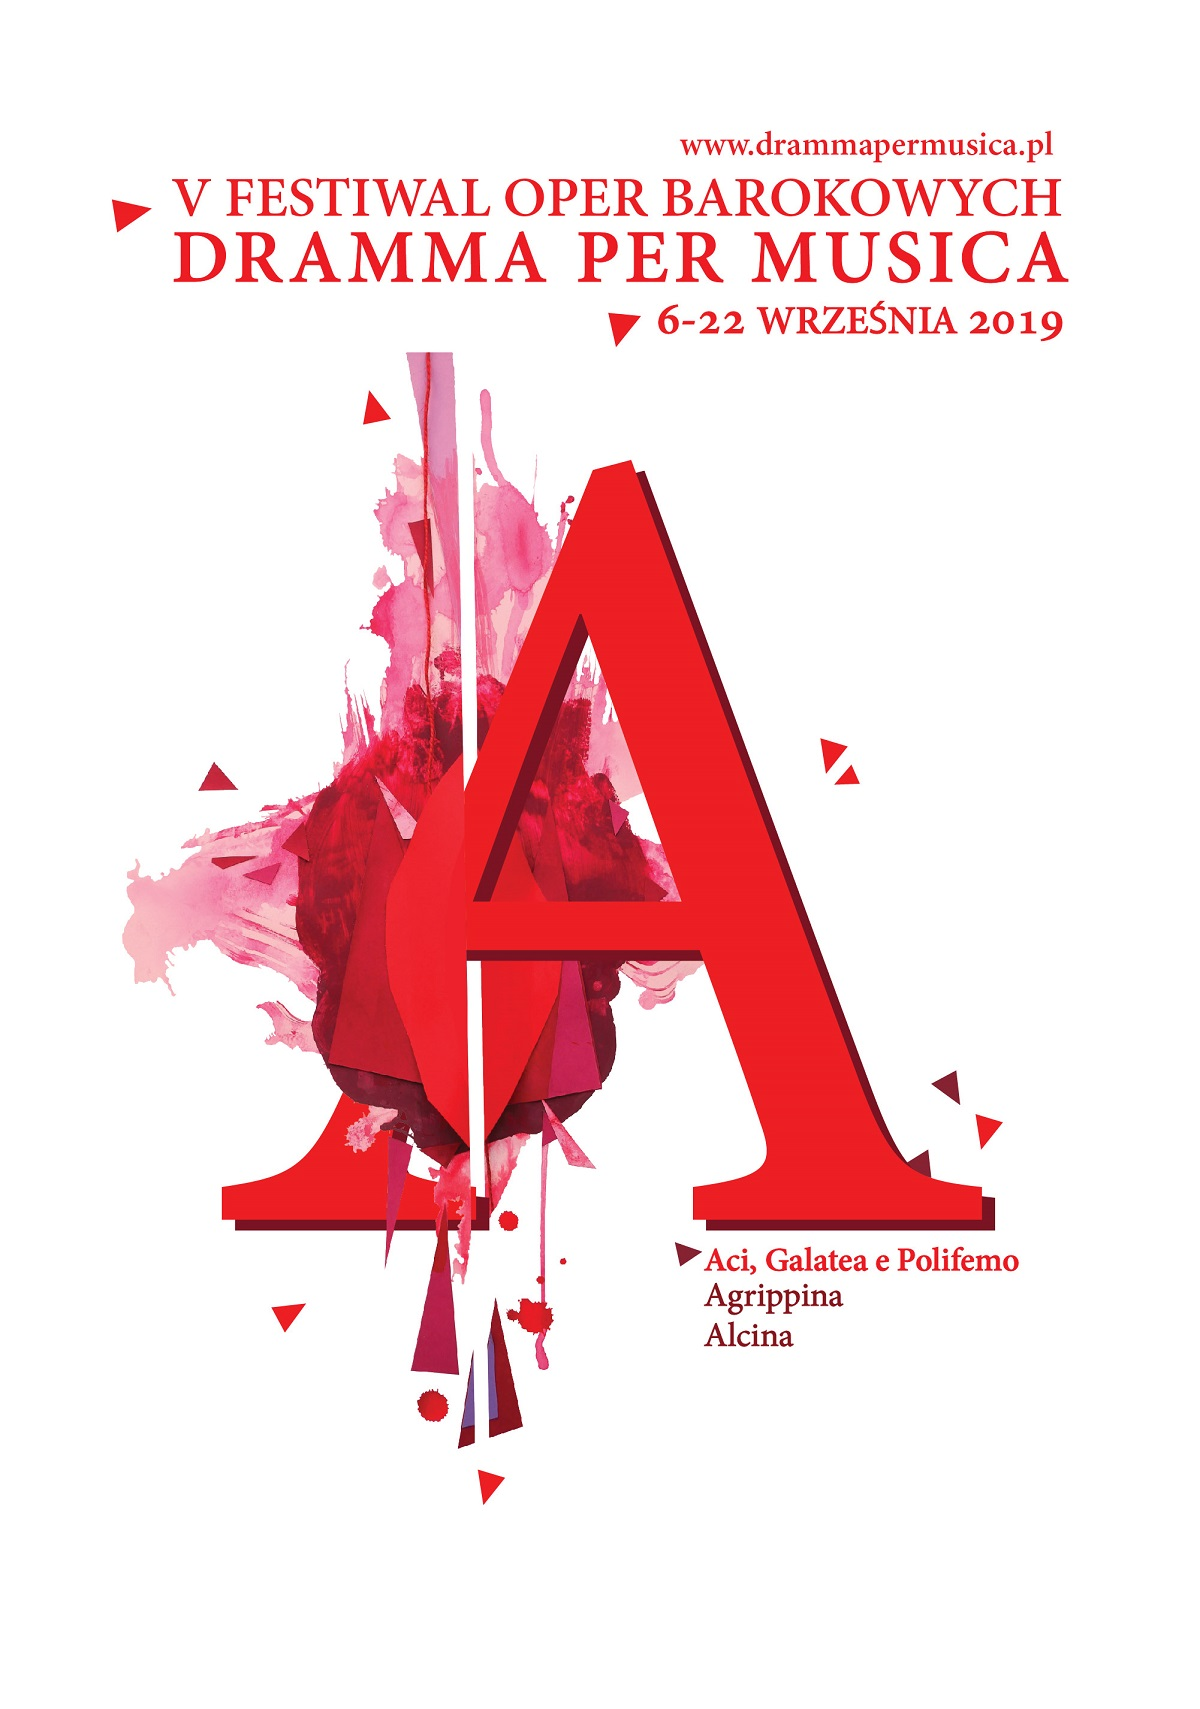 The annual Dramma per Musica festival is now in its fifth year.